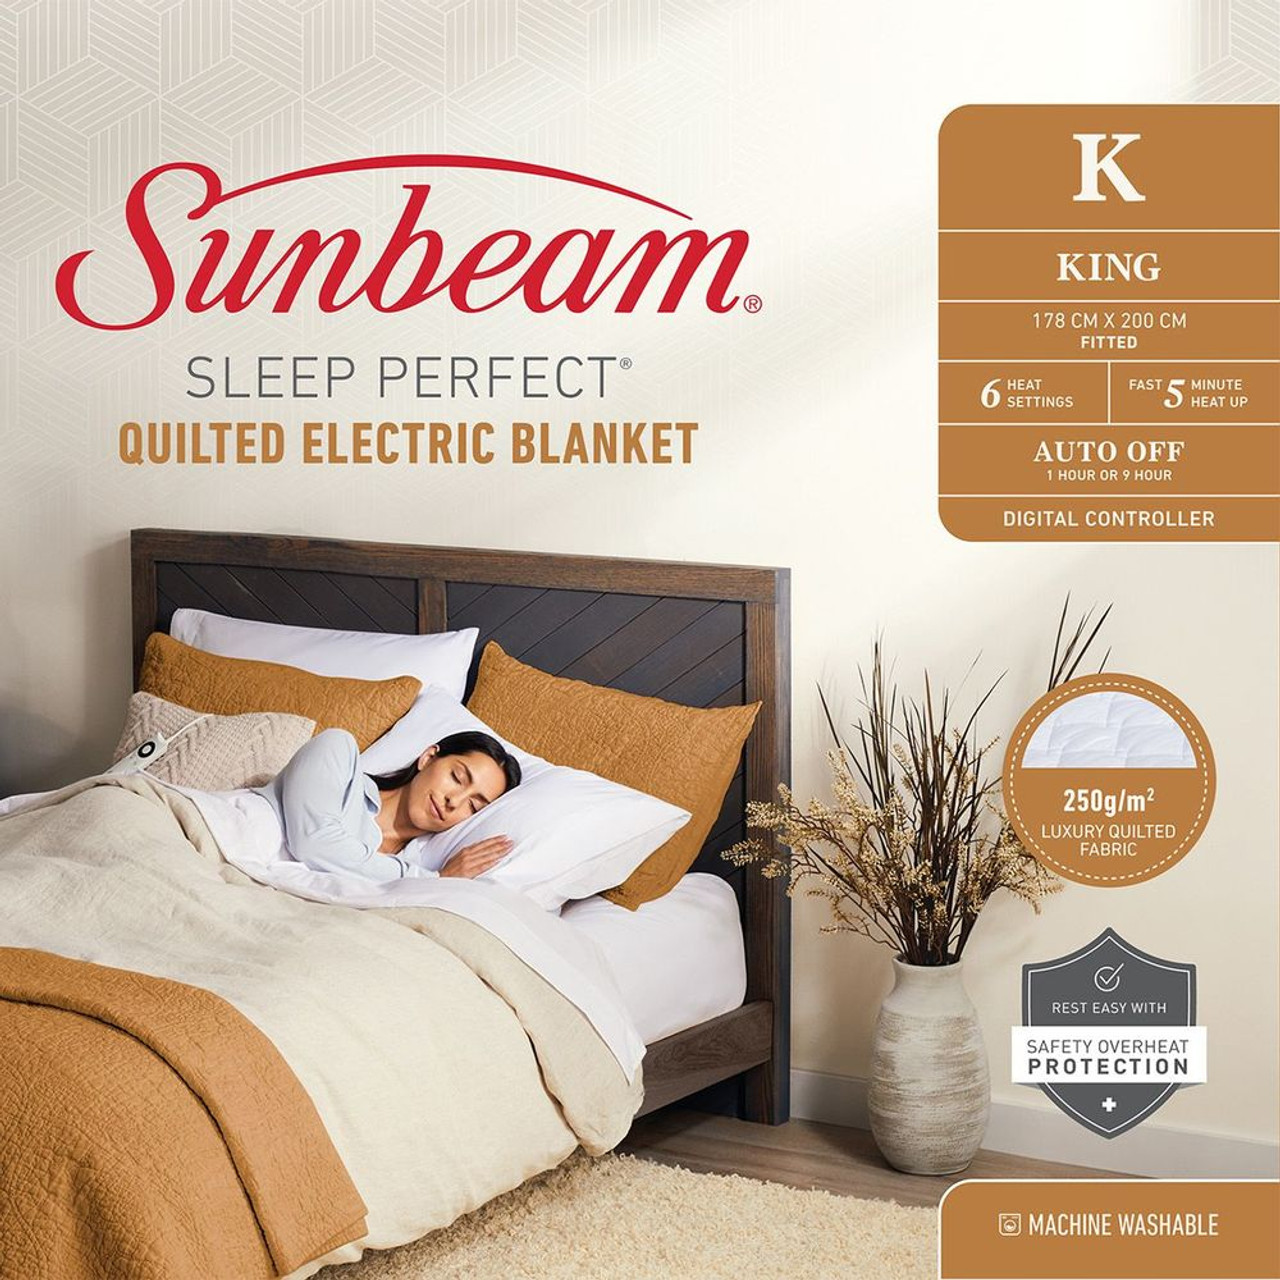 Sunbeam BLQ5471 Sleep Perfect™ Quilted Heated Blanket - King Bed